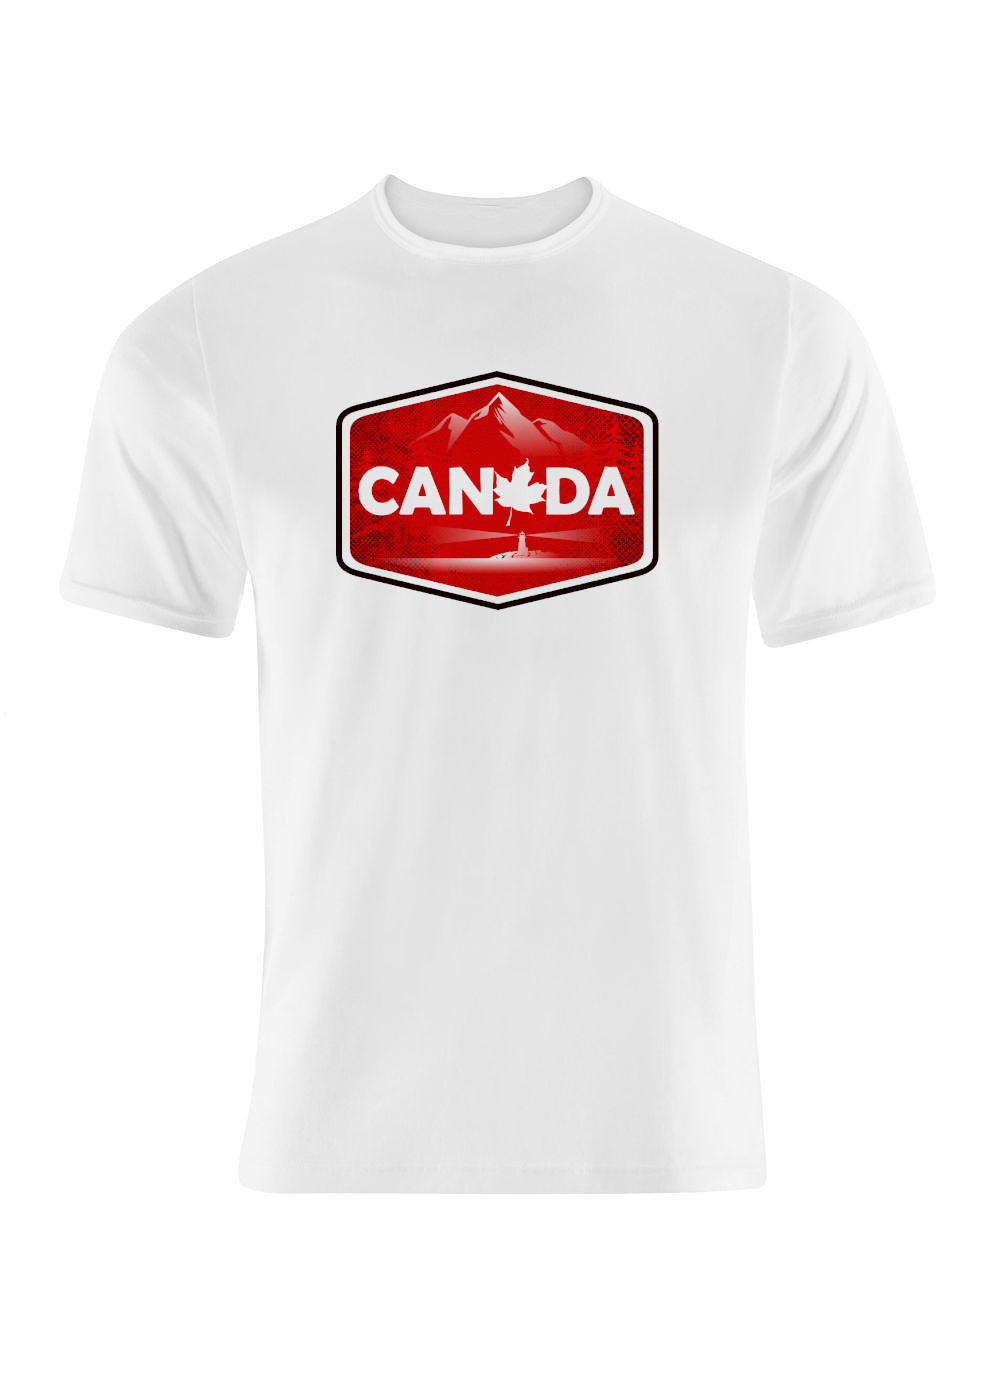 Canada Coast to Coast Graphic T Shirt